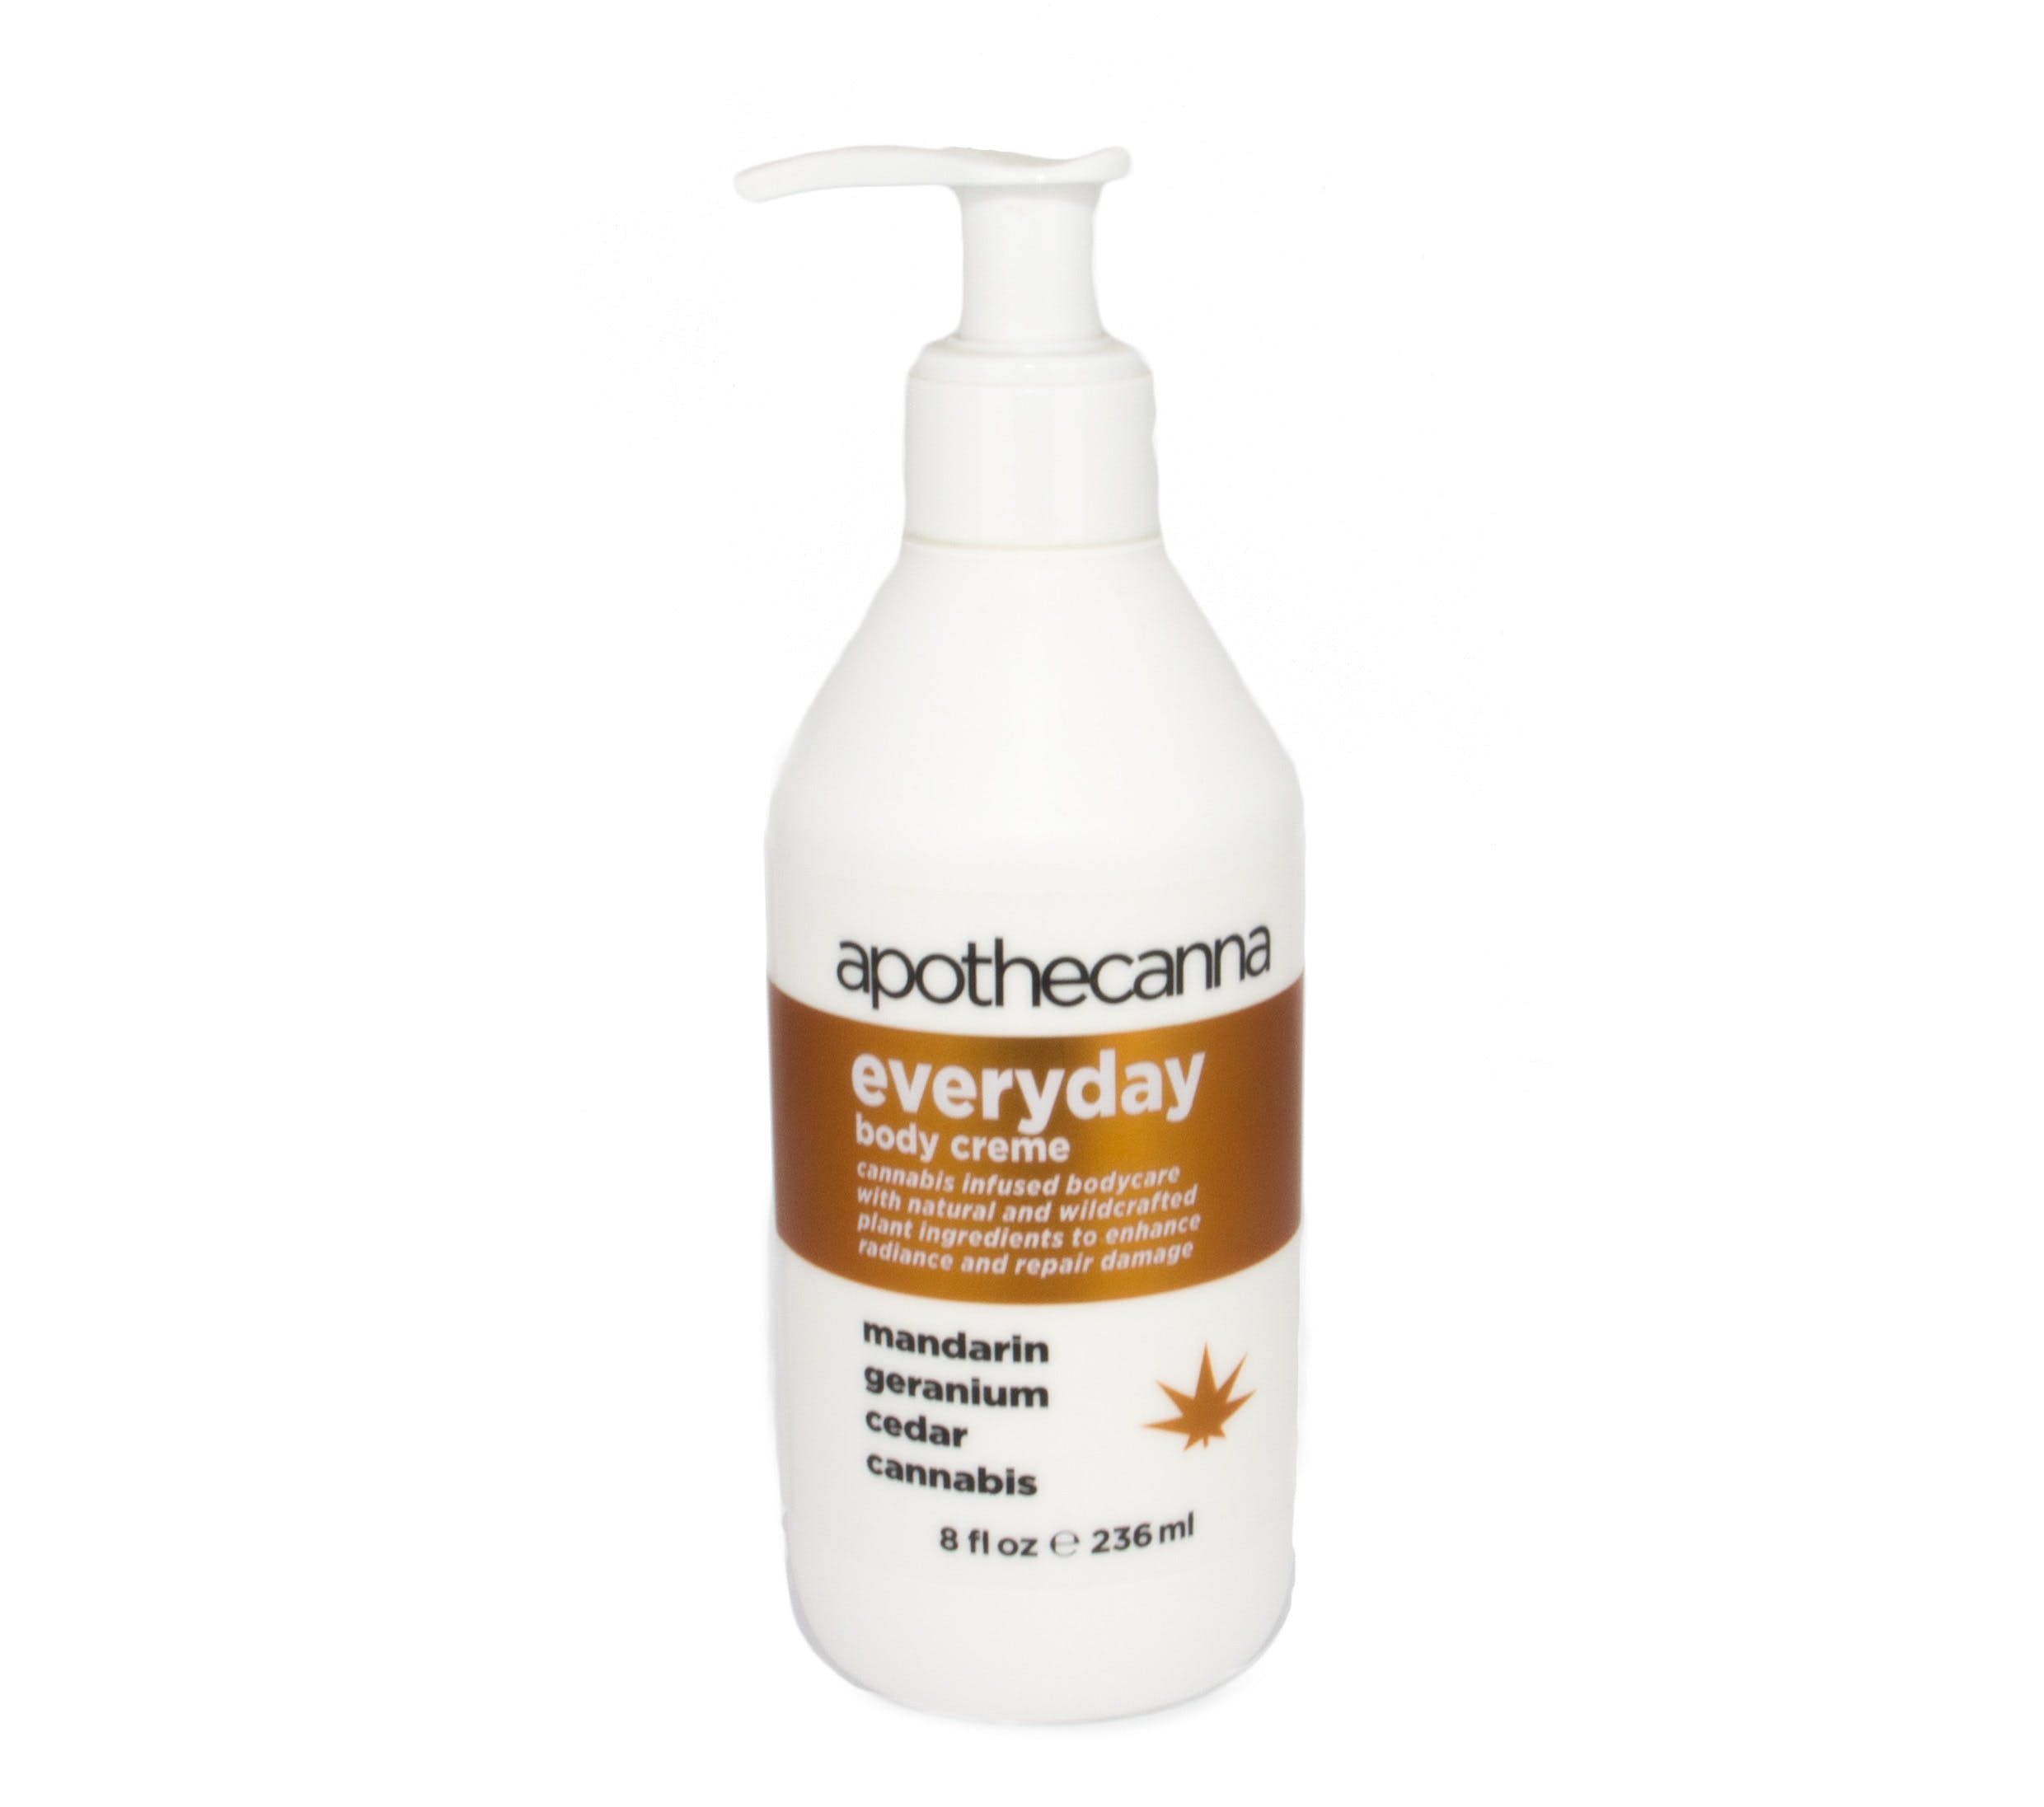 topicals-apothecanna-everyday-body-creme-8-fl-oz